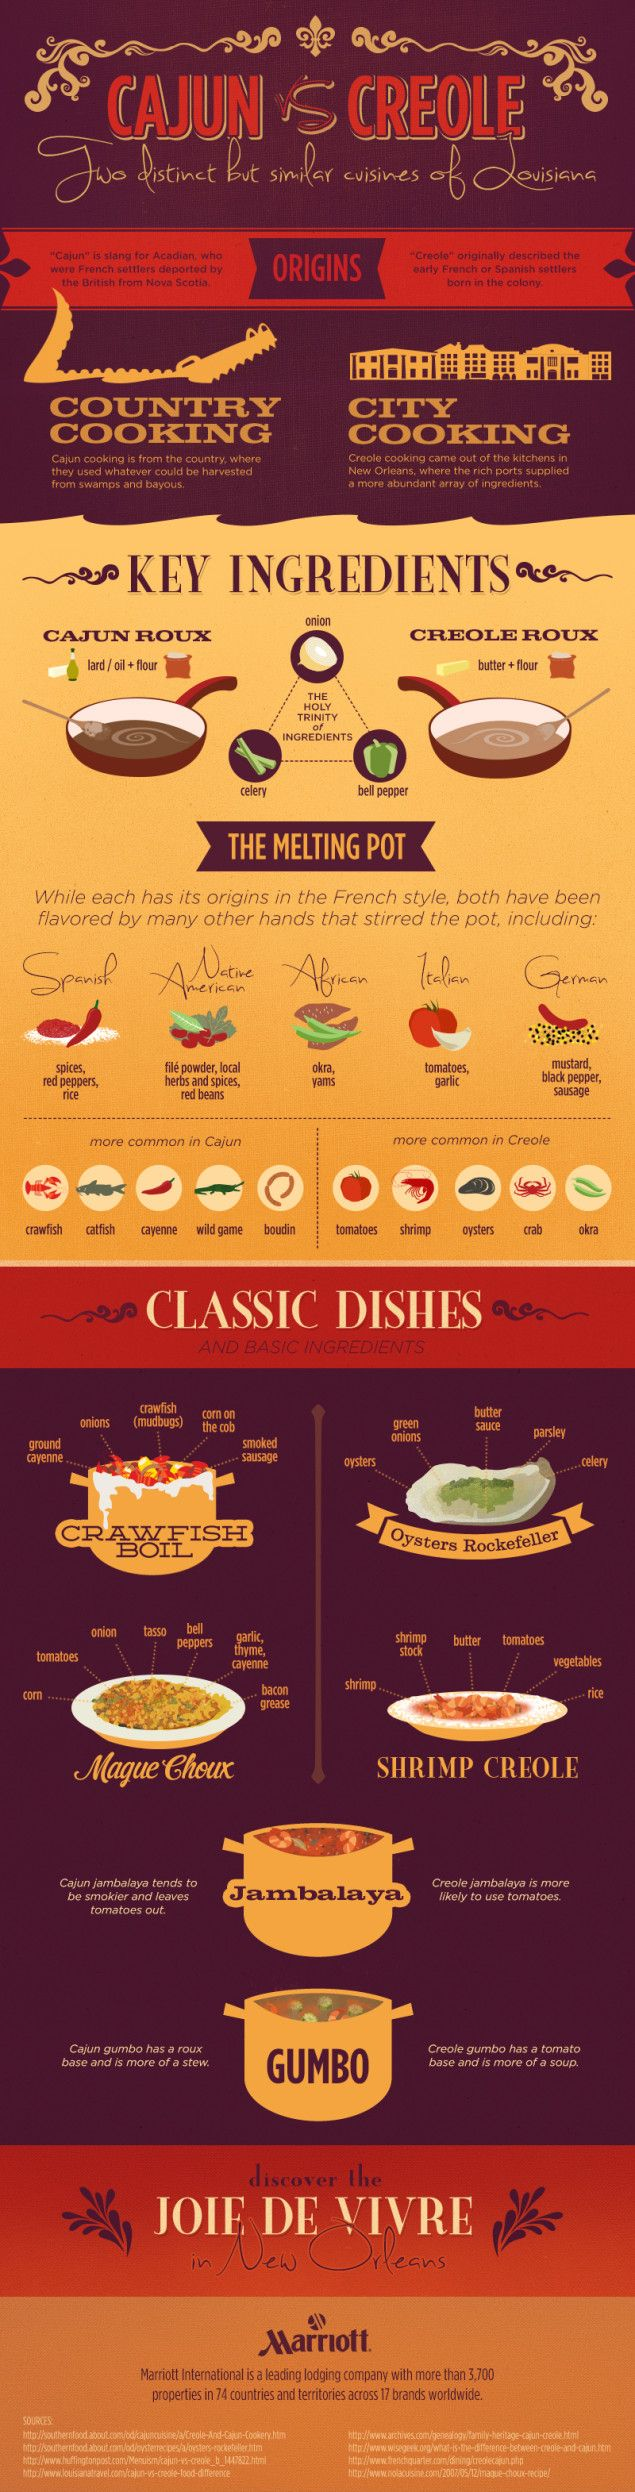 YUM! Cajun vs. Creole Food #Infographic